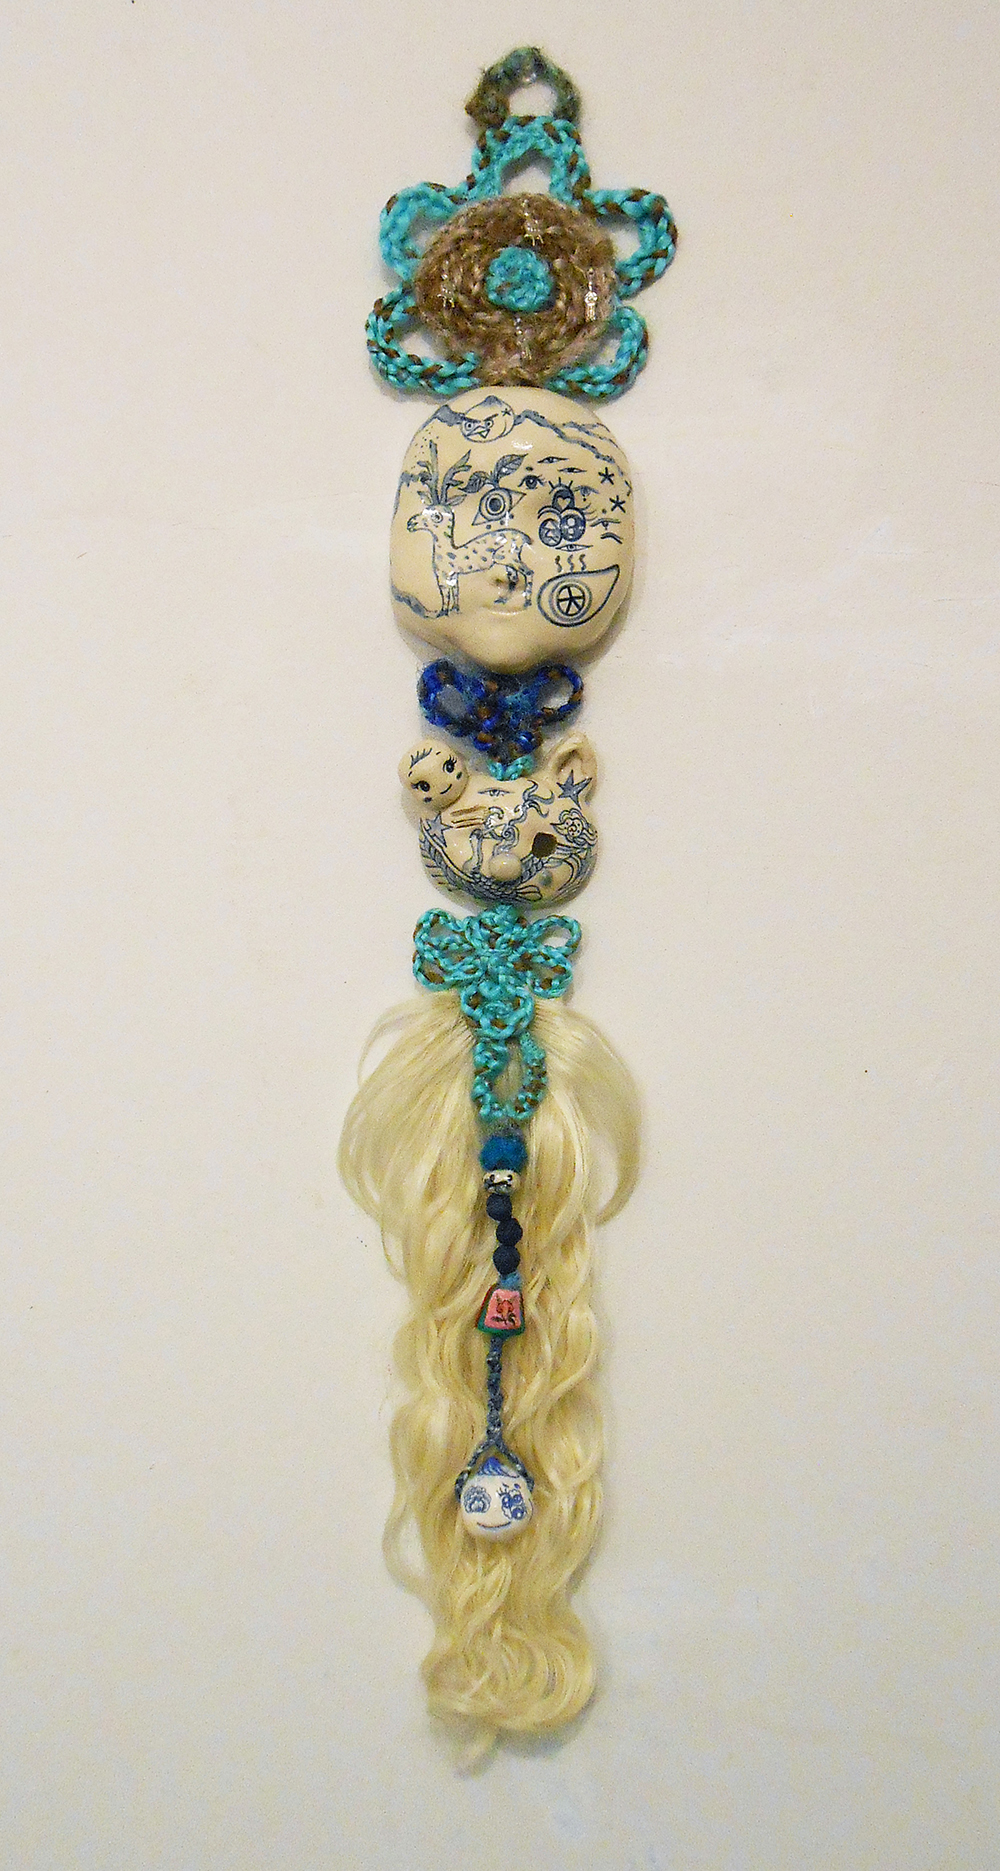 "Jiha Moon  Moonface  Earthenware ceramic, hand-knotted synthetic hair, found objects, wire 33"" x 6.5"" x 2"" 2015"